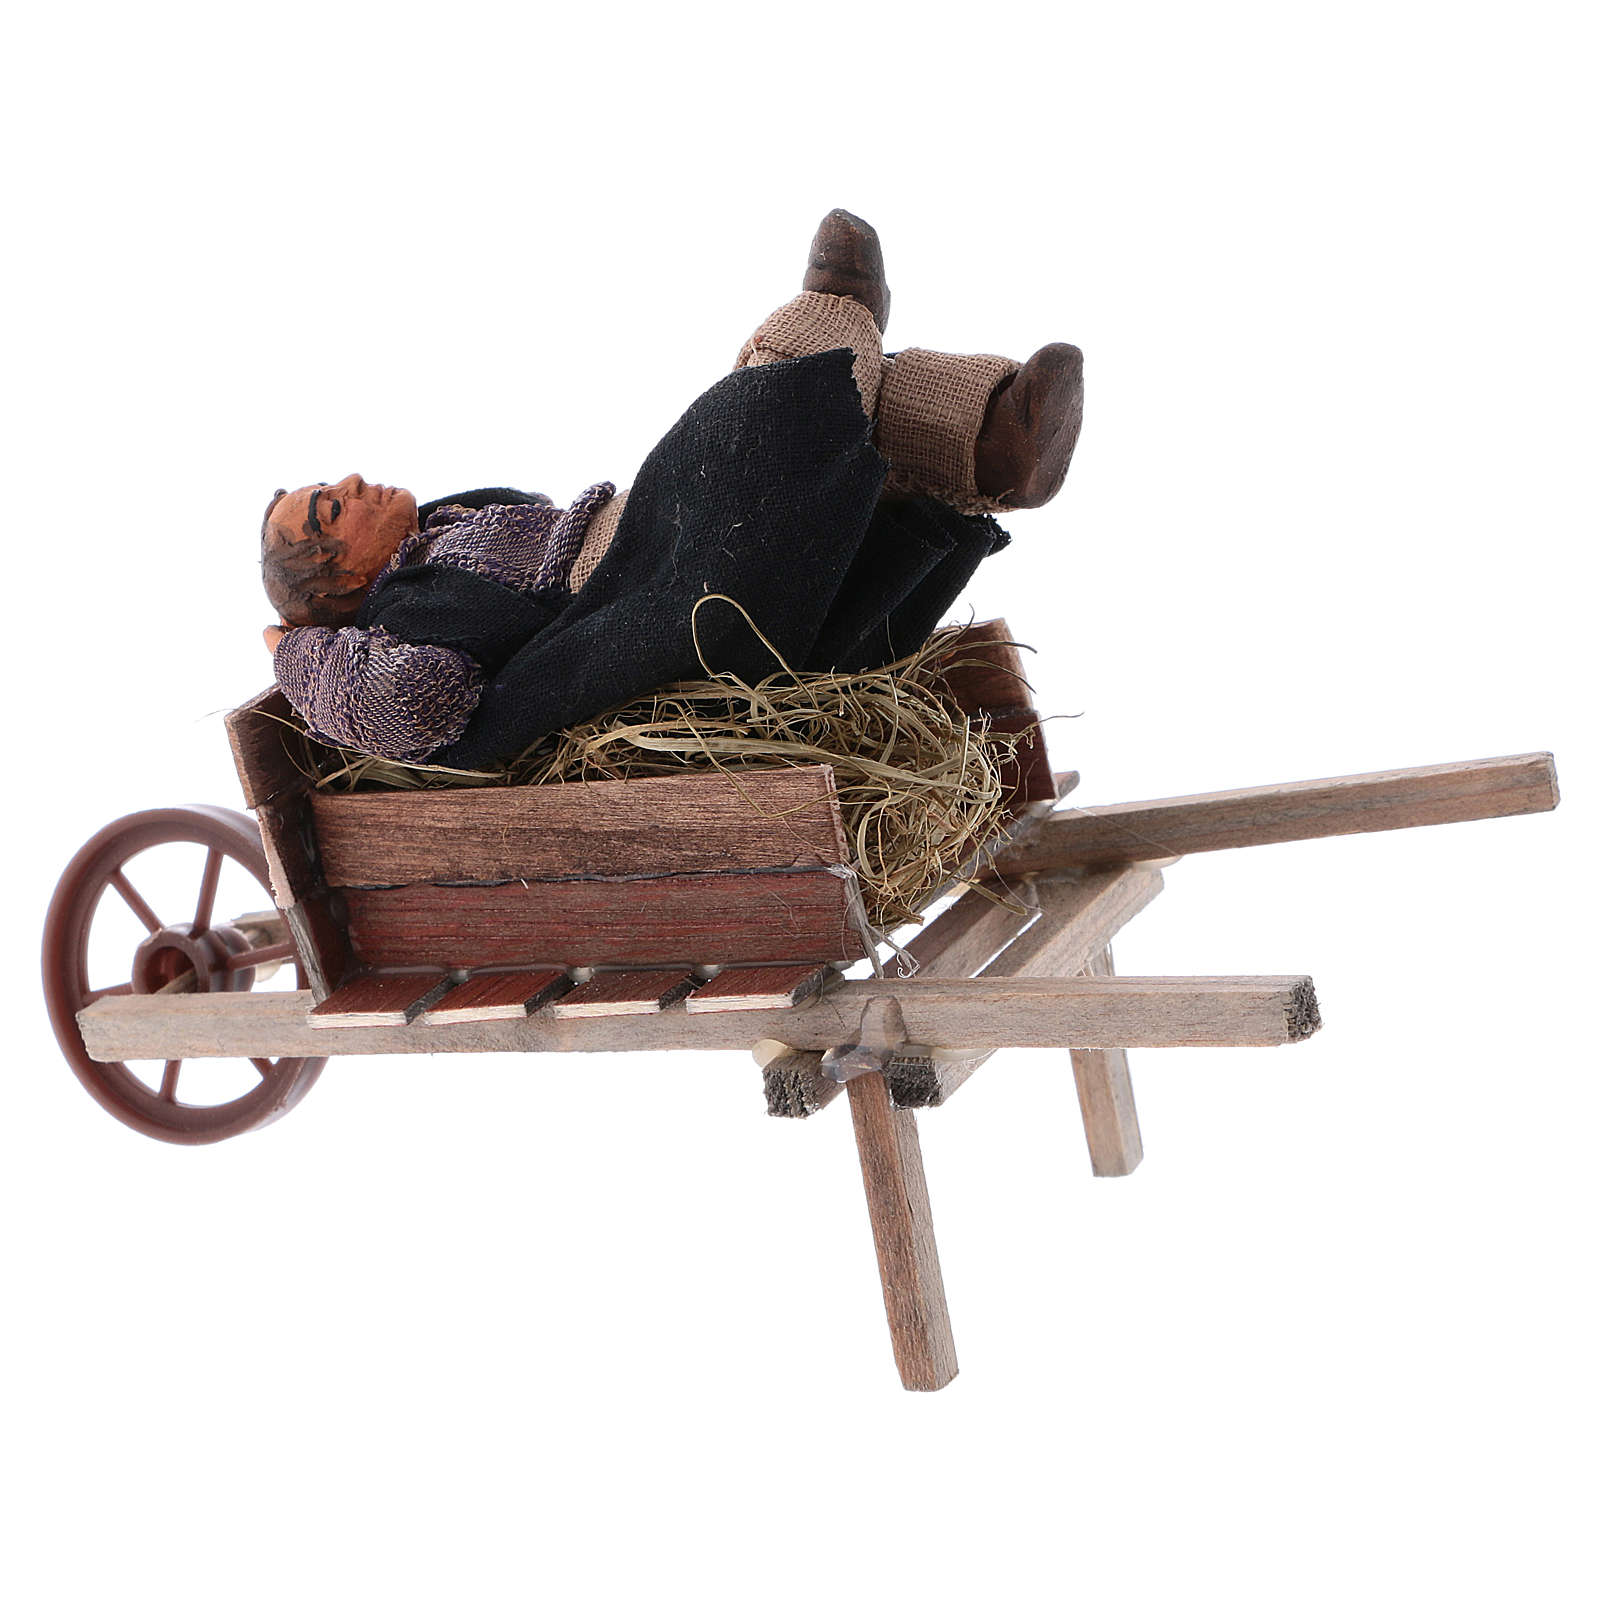 Neapolitan nativity scene statue man in wheelbarrow reading 10 cm 4